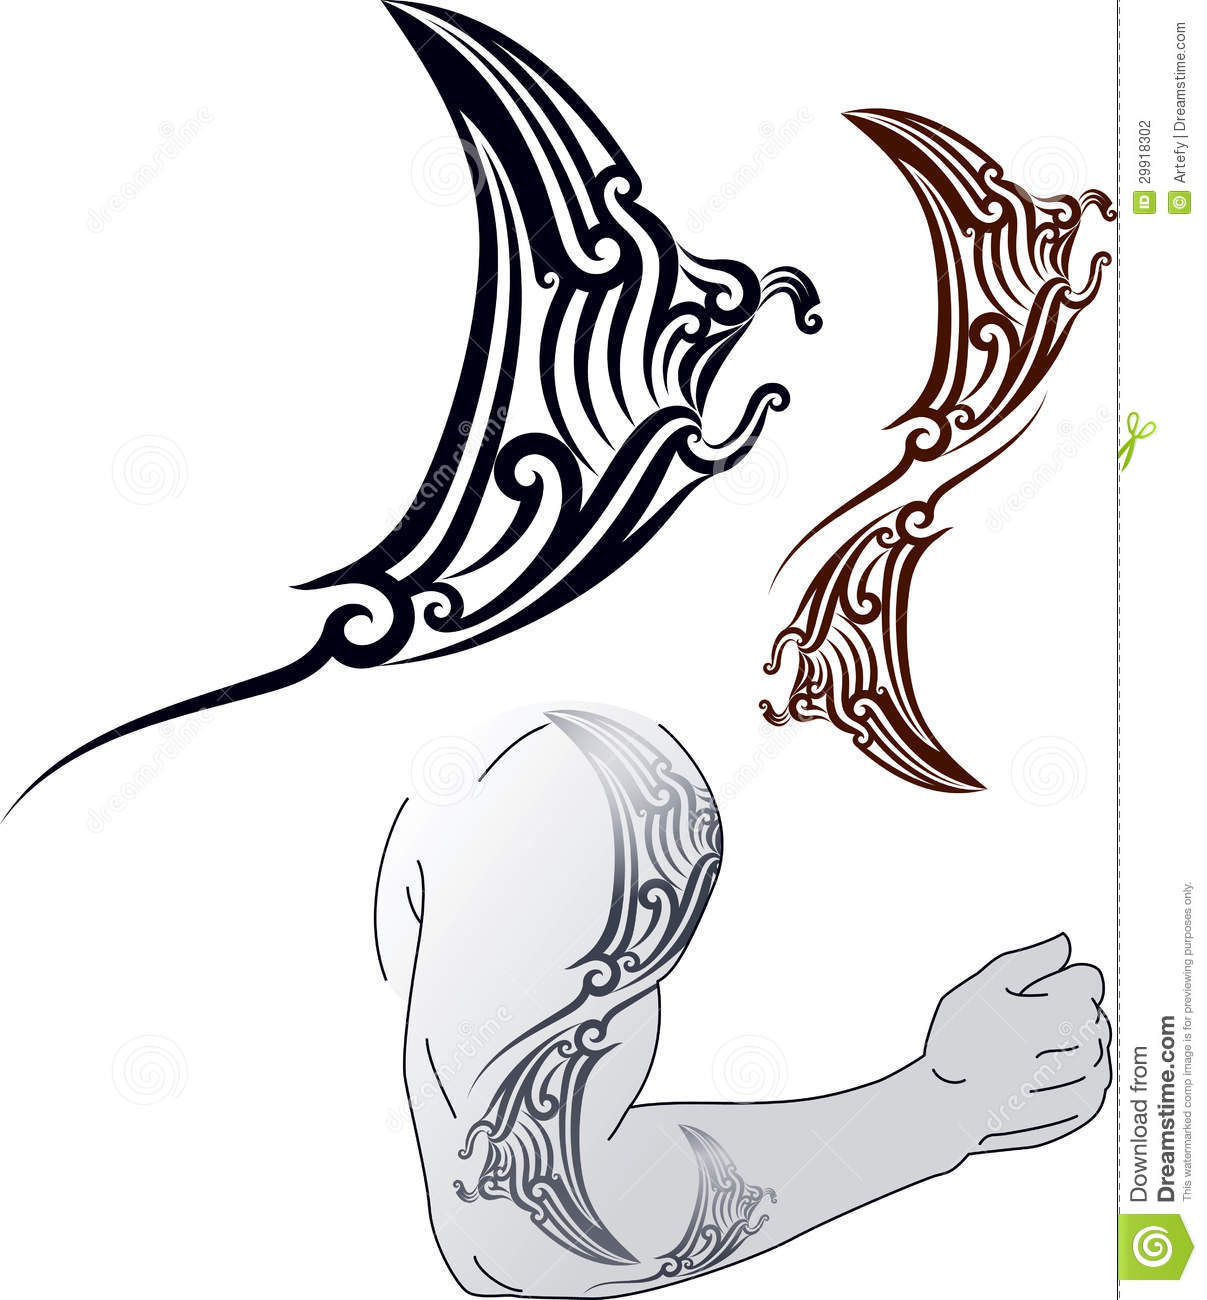 Maori styled tattoo pattern in shape of manta ray profile. Fit for ...